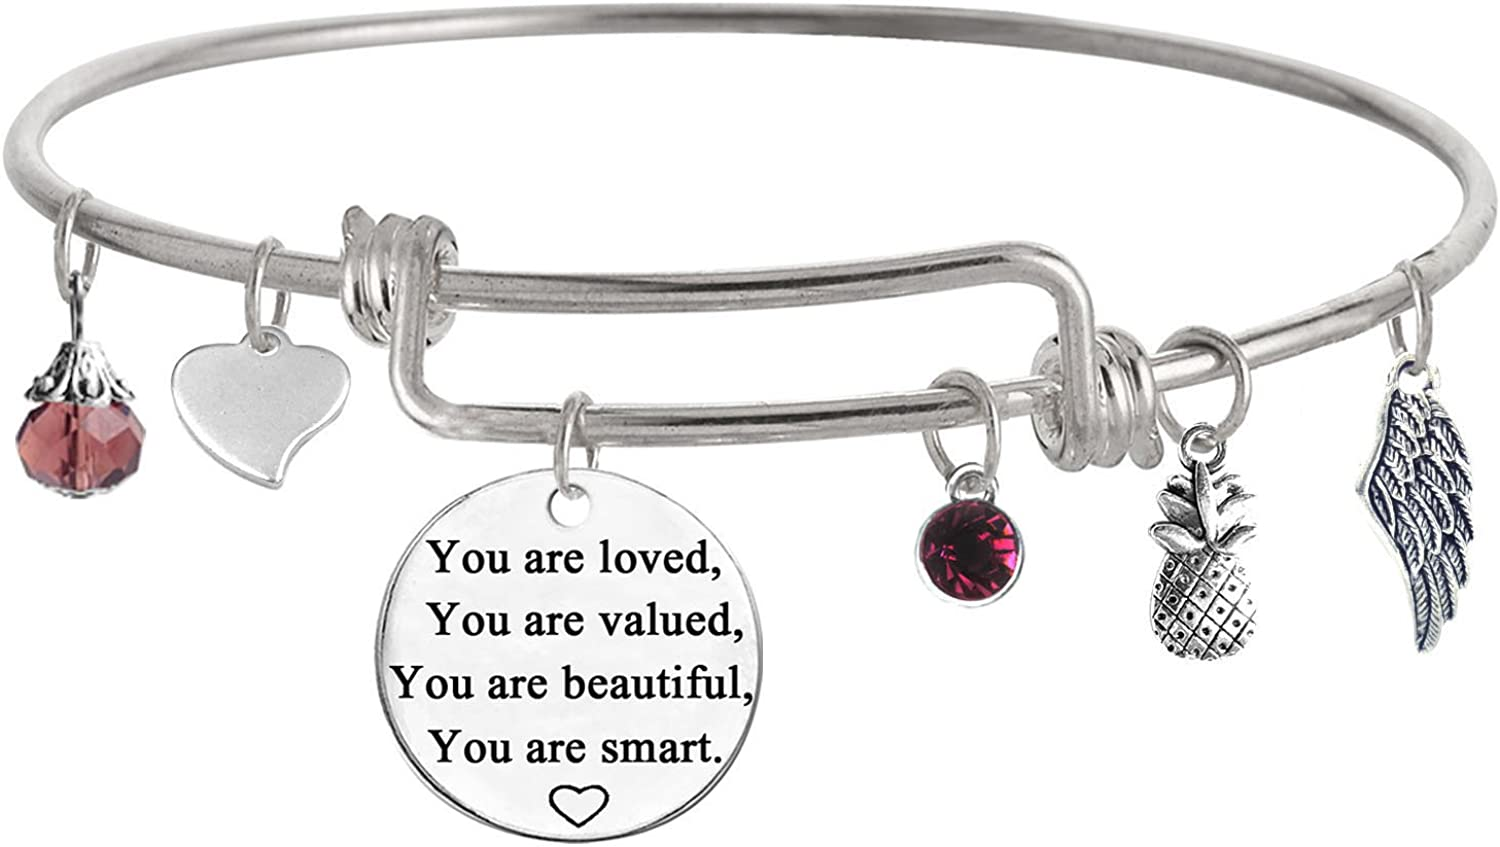 TISDA You are Loved You are Valued You are Beautiful You are Smart Inspirational Jewelry Bracelet Expandable Bangle Gift for Women girl